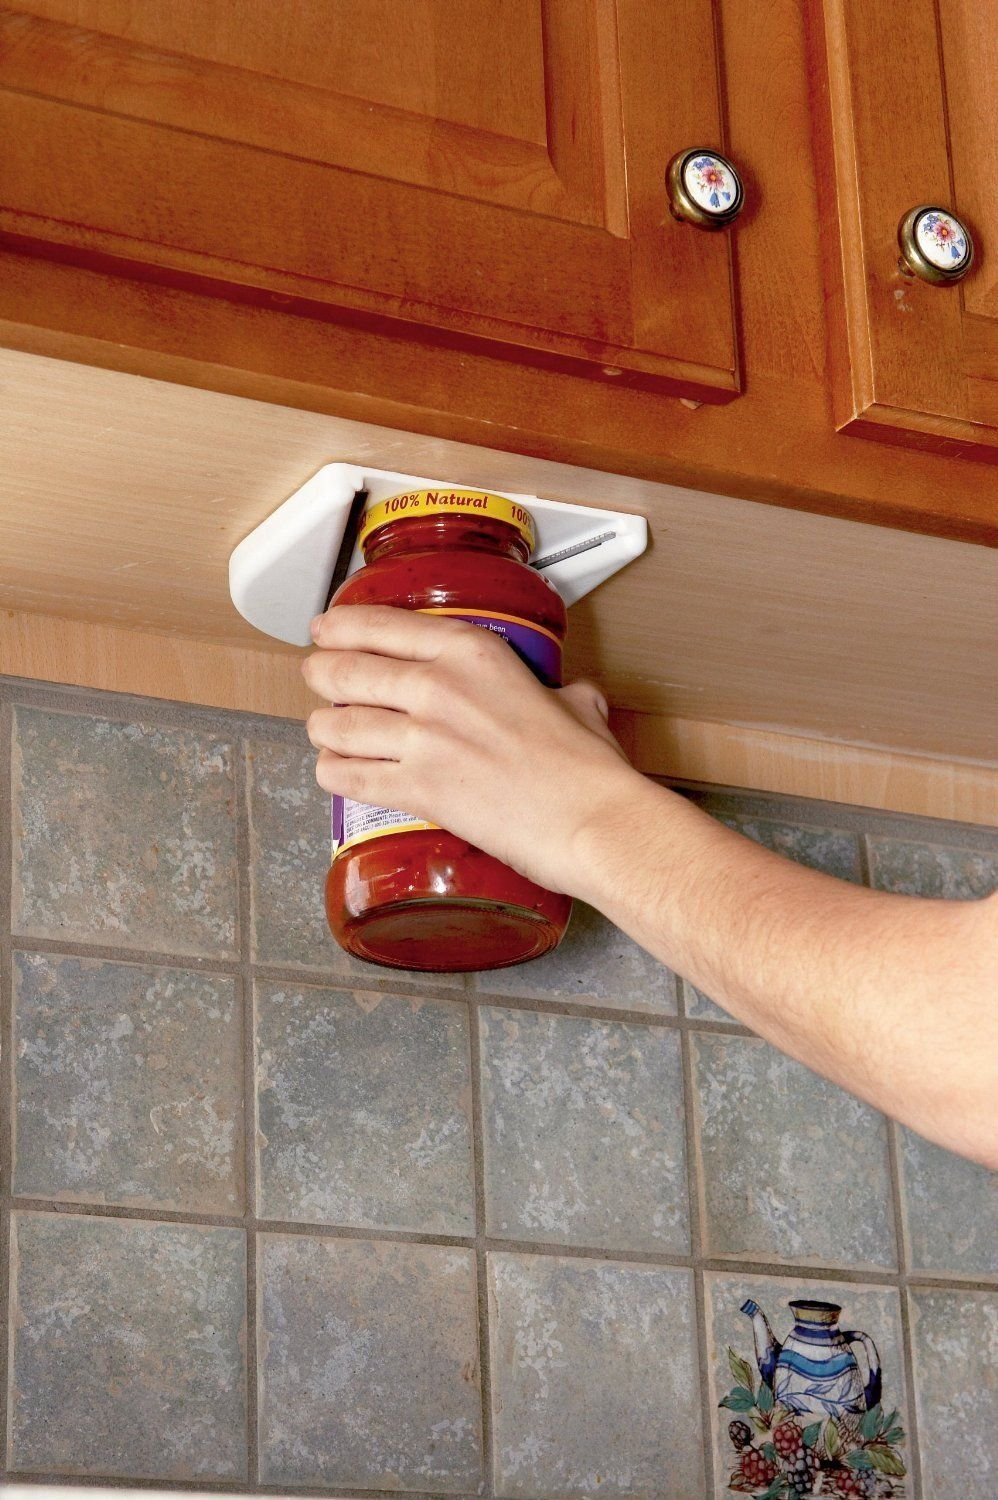 Under Cabinet or Counter JAR OPENER VISE Kitchen Lid - Great for Arthritic Hands by NEW Thailand